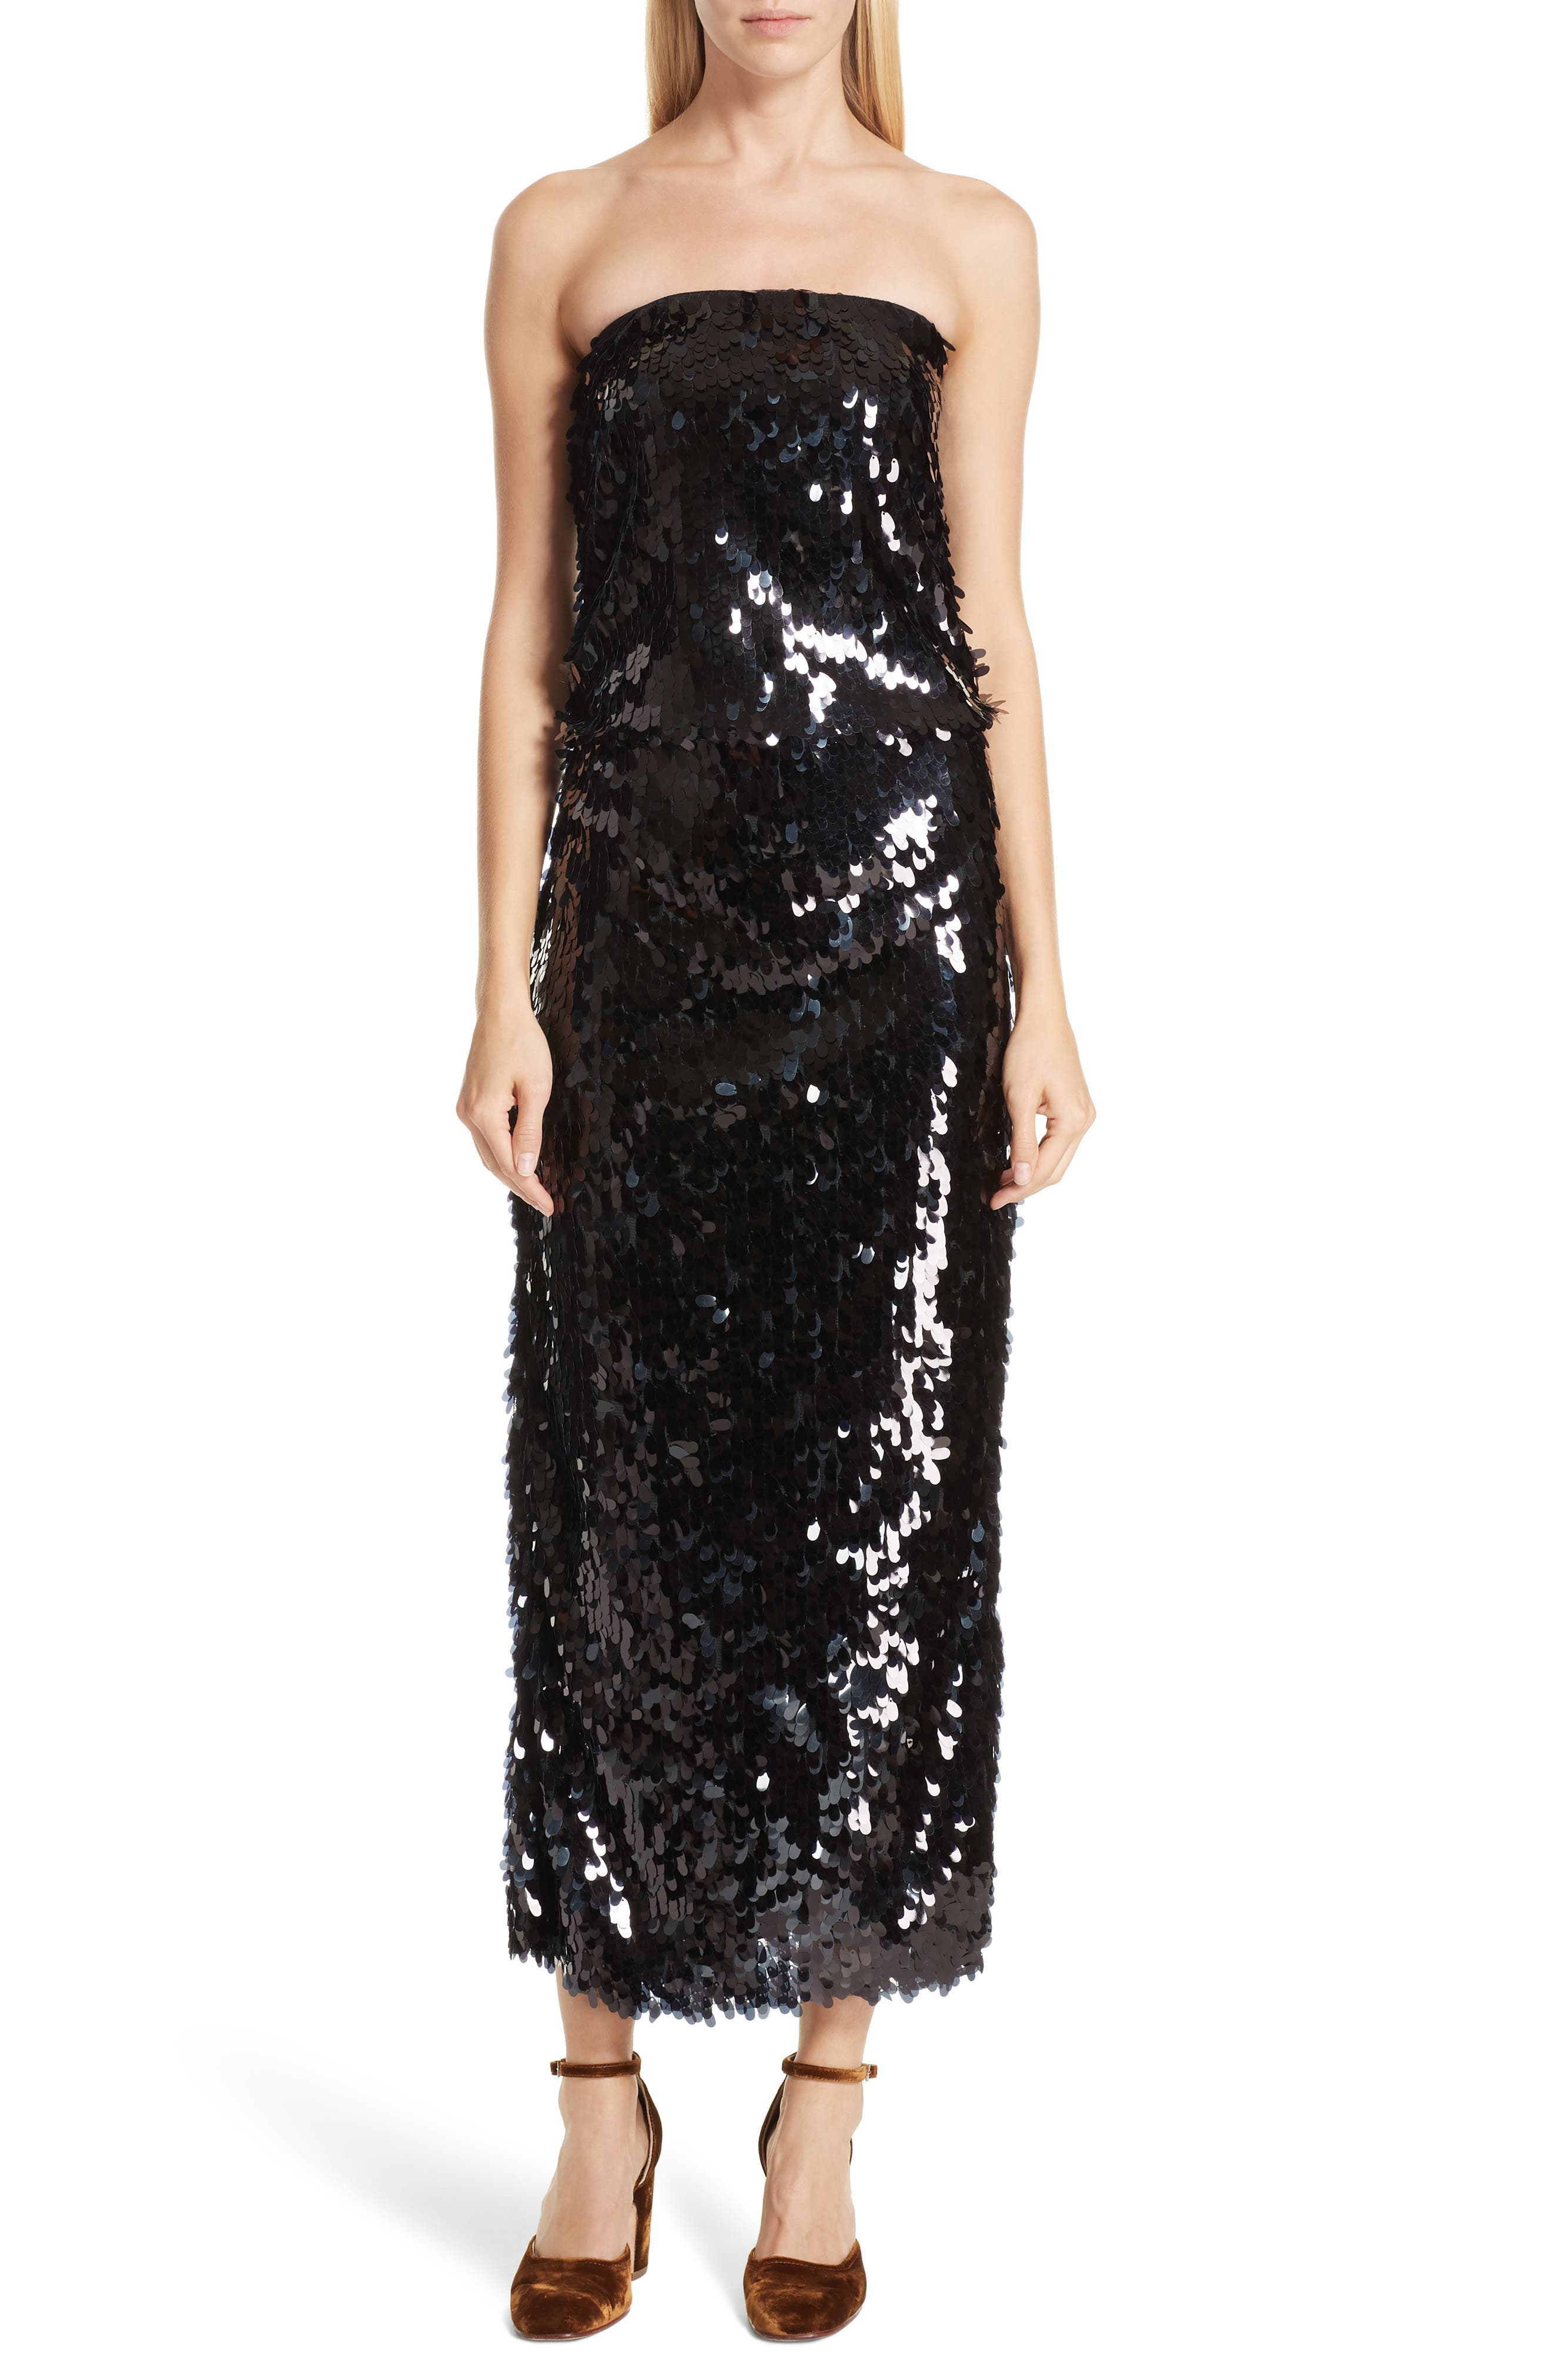 Rachel Comey Destra Strapless Sequin Dress